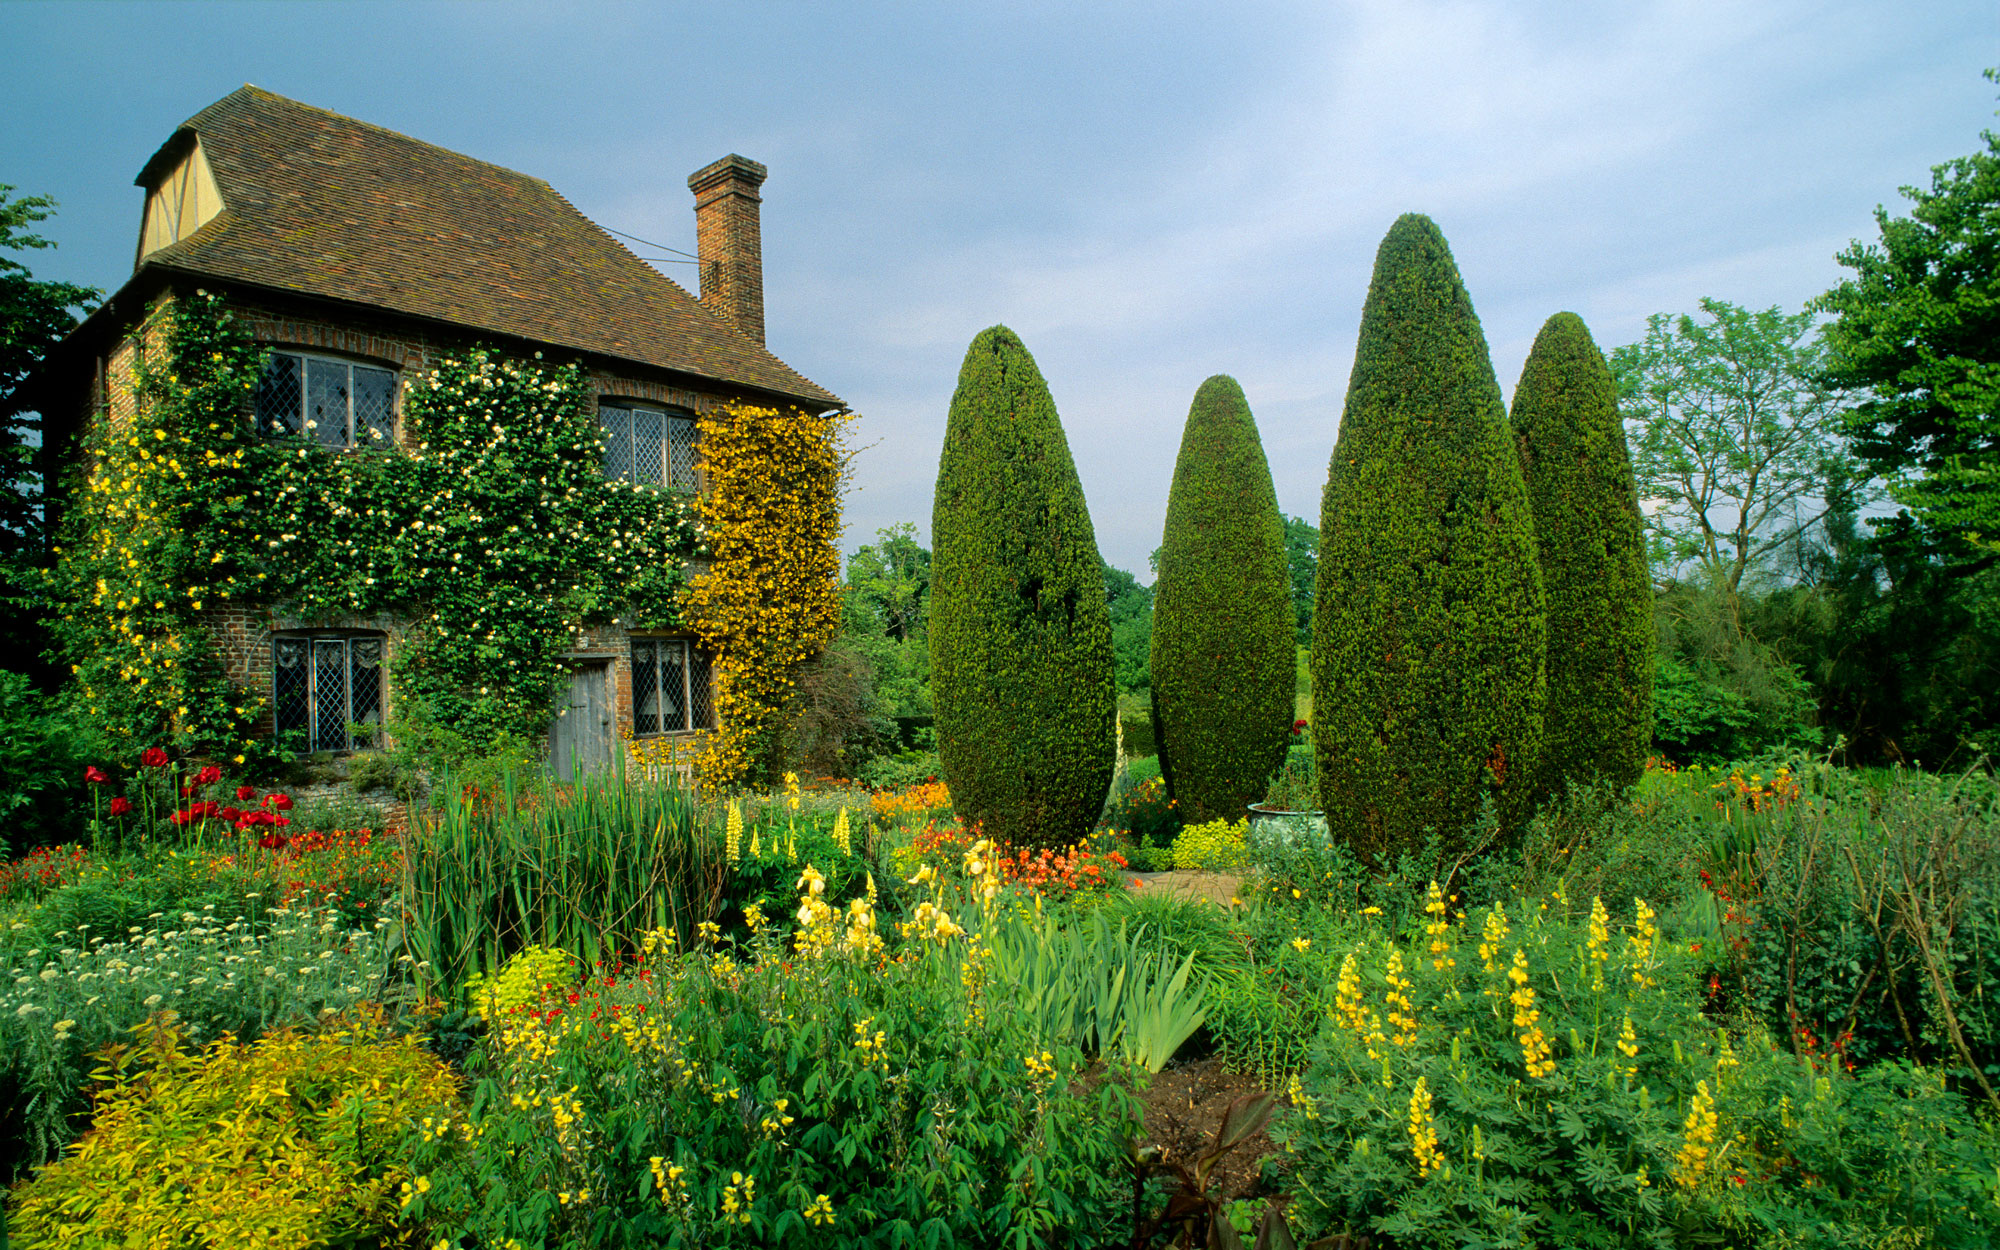 Things to Do in England: Marvel at Sissinghurst Castle Garden